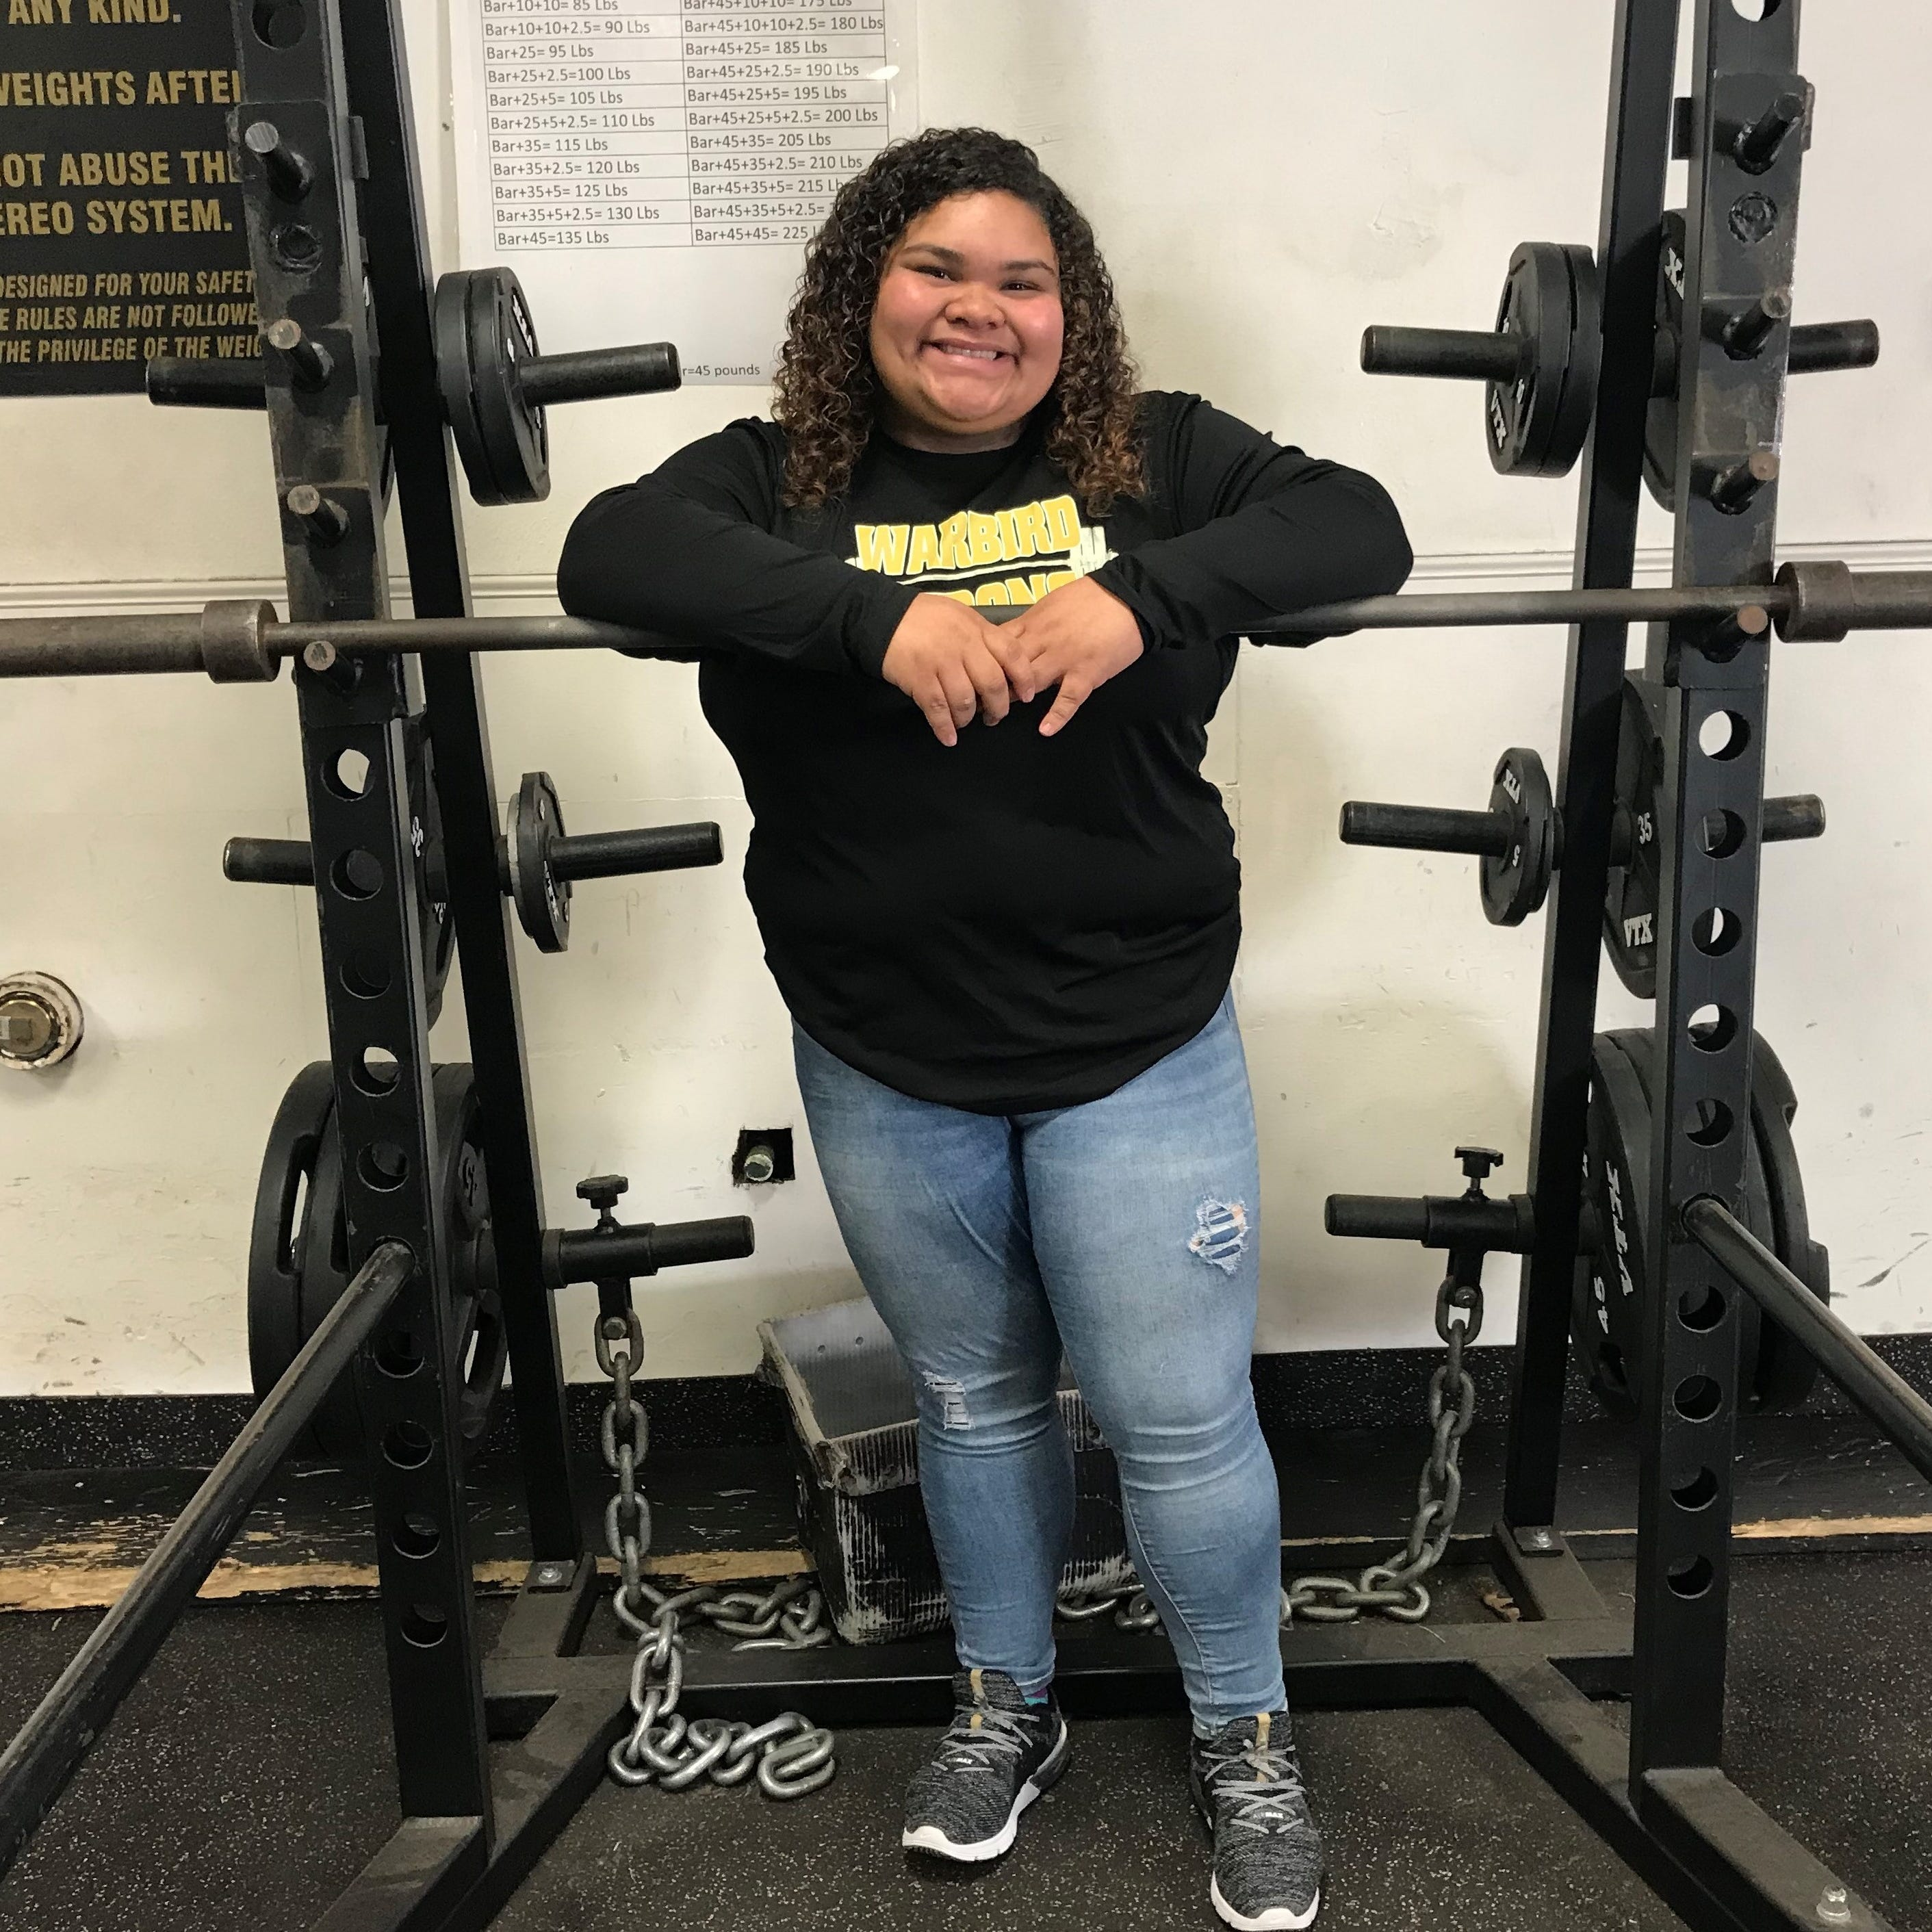 After doctors said she'd never lift again, Abilene High's Renteria places 2nd at state meet